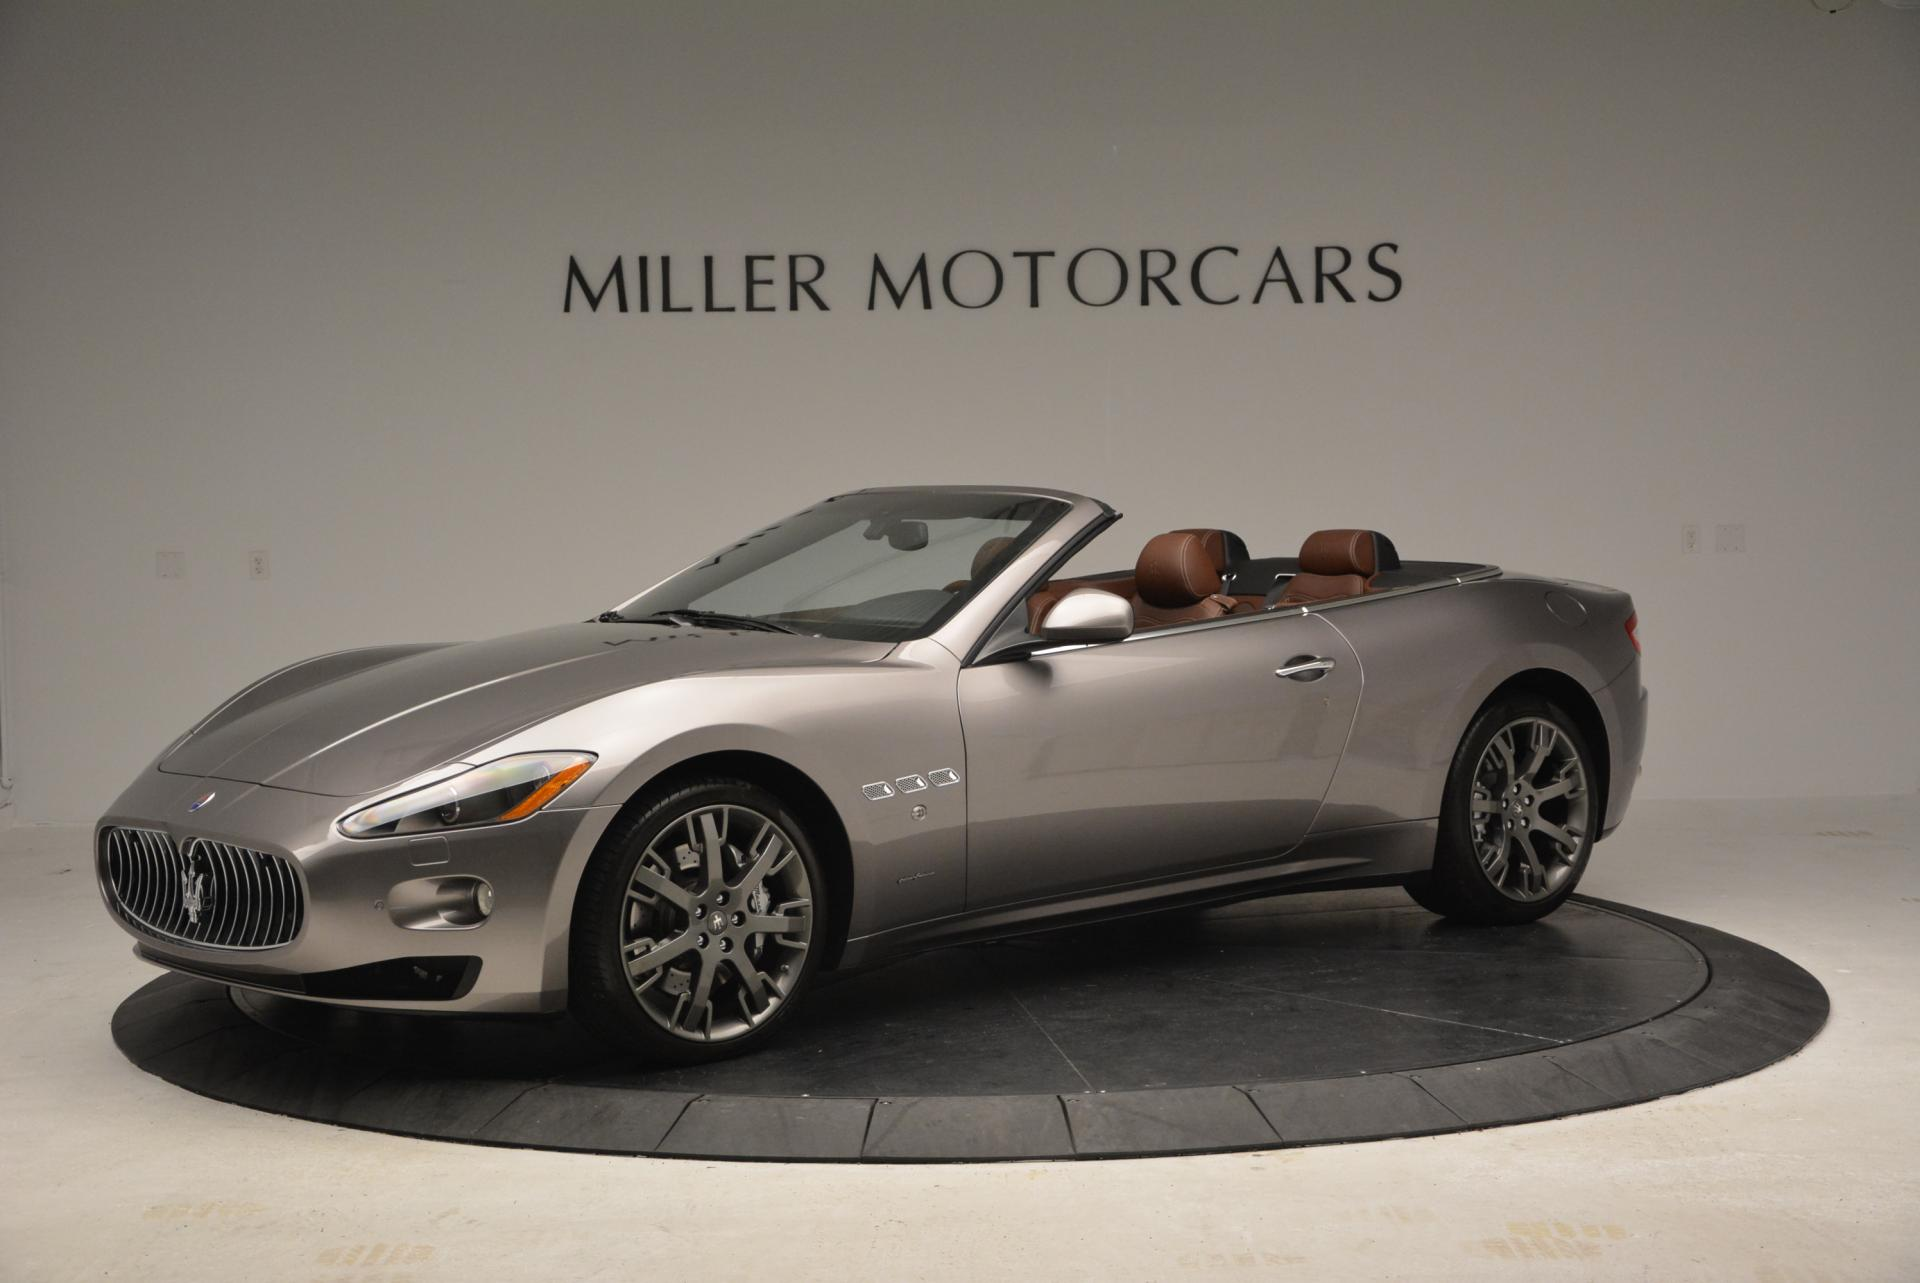 Used 2012 Maserati GranTurismo  For Sale In Westport, CT 157_p2